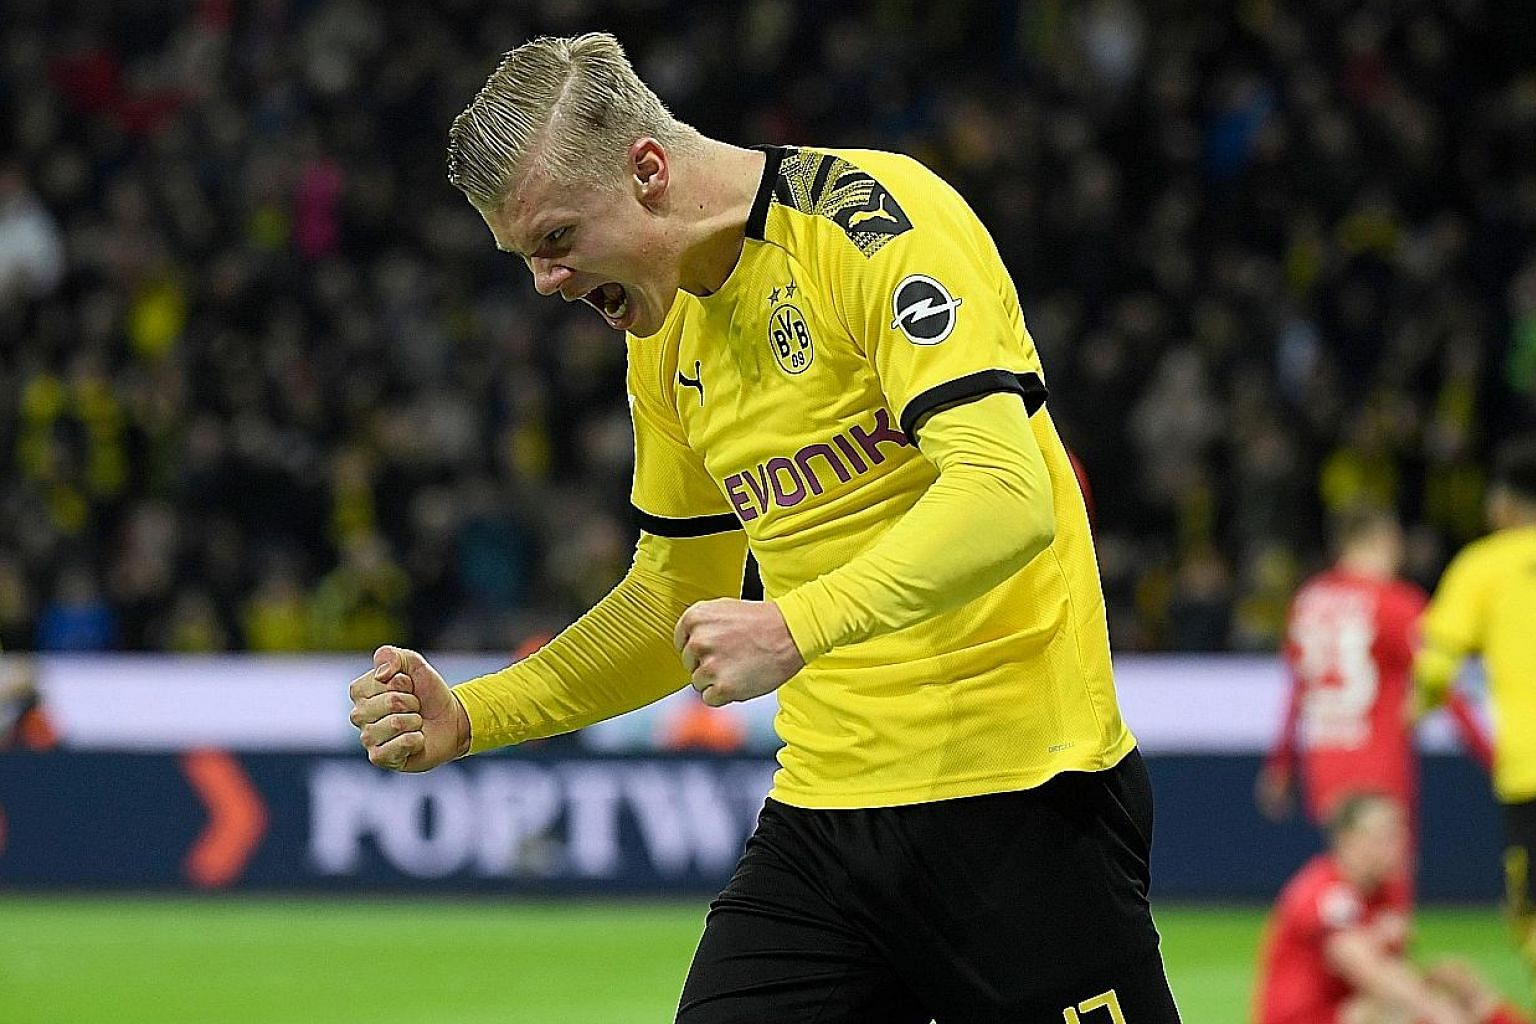 Dortmund's teenage Norwegian forward Erling Haaland celebrating a goal in the Bundesliga match against Leverkusen in February. He netted a hat-trick when he came on as a second-half substitute on his debut against Augsburg the month before.